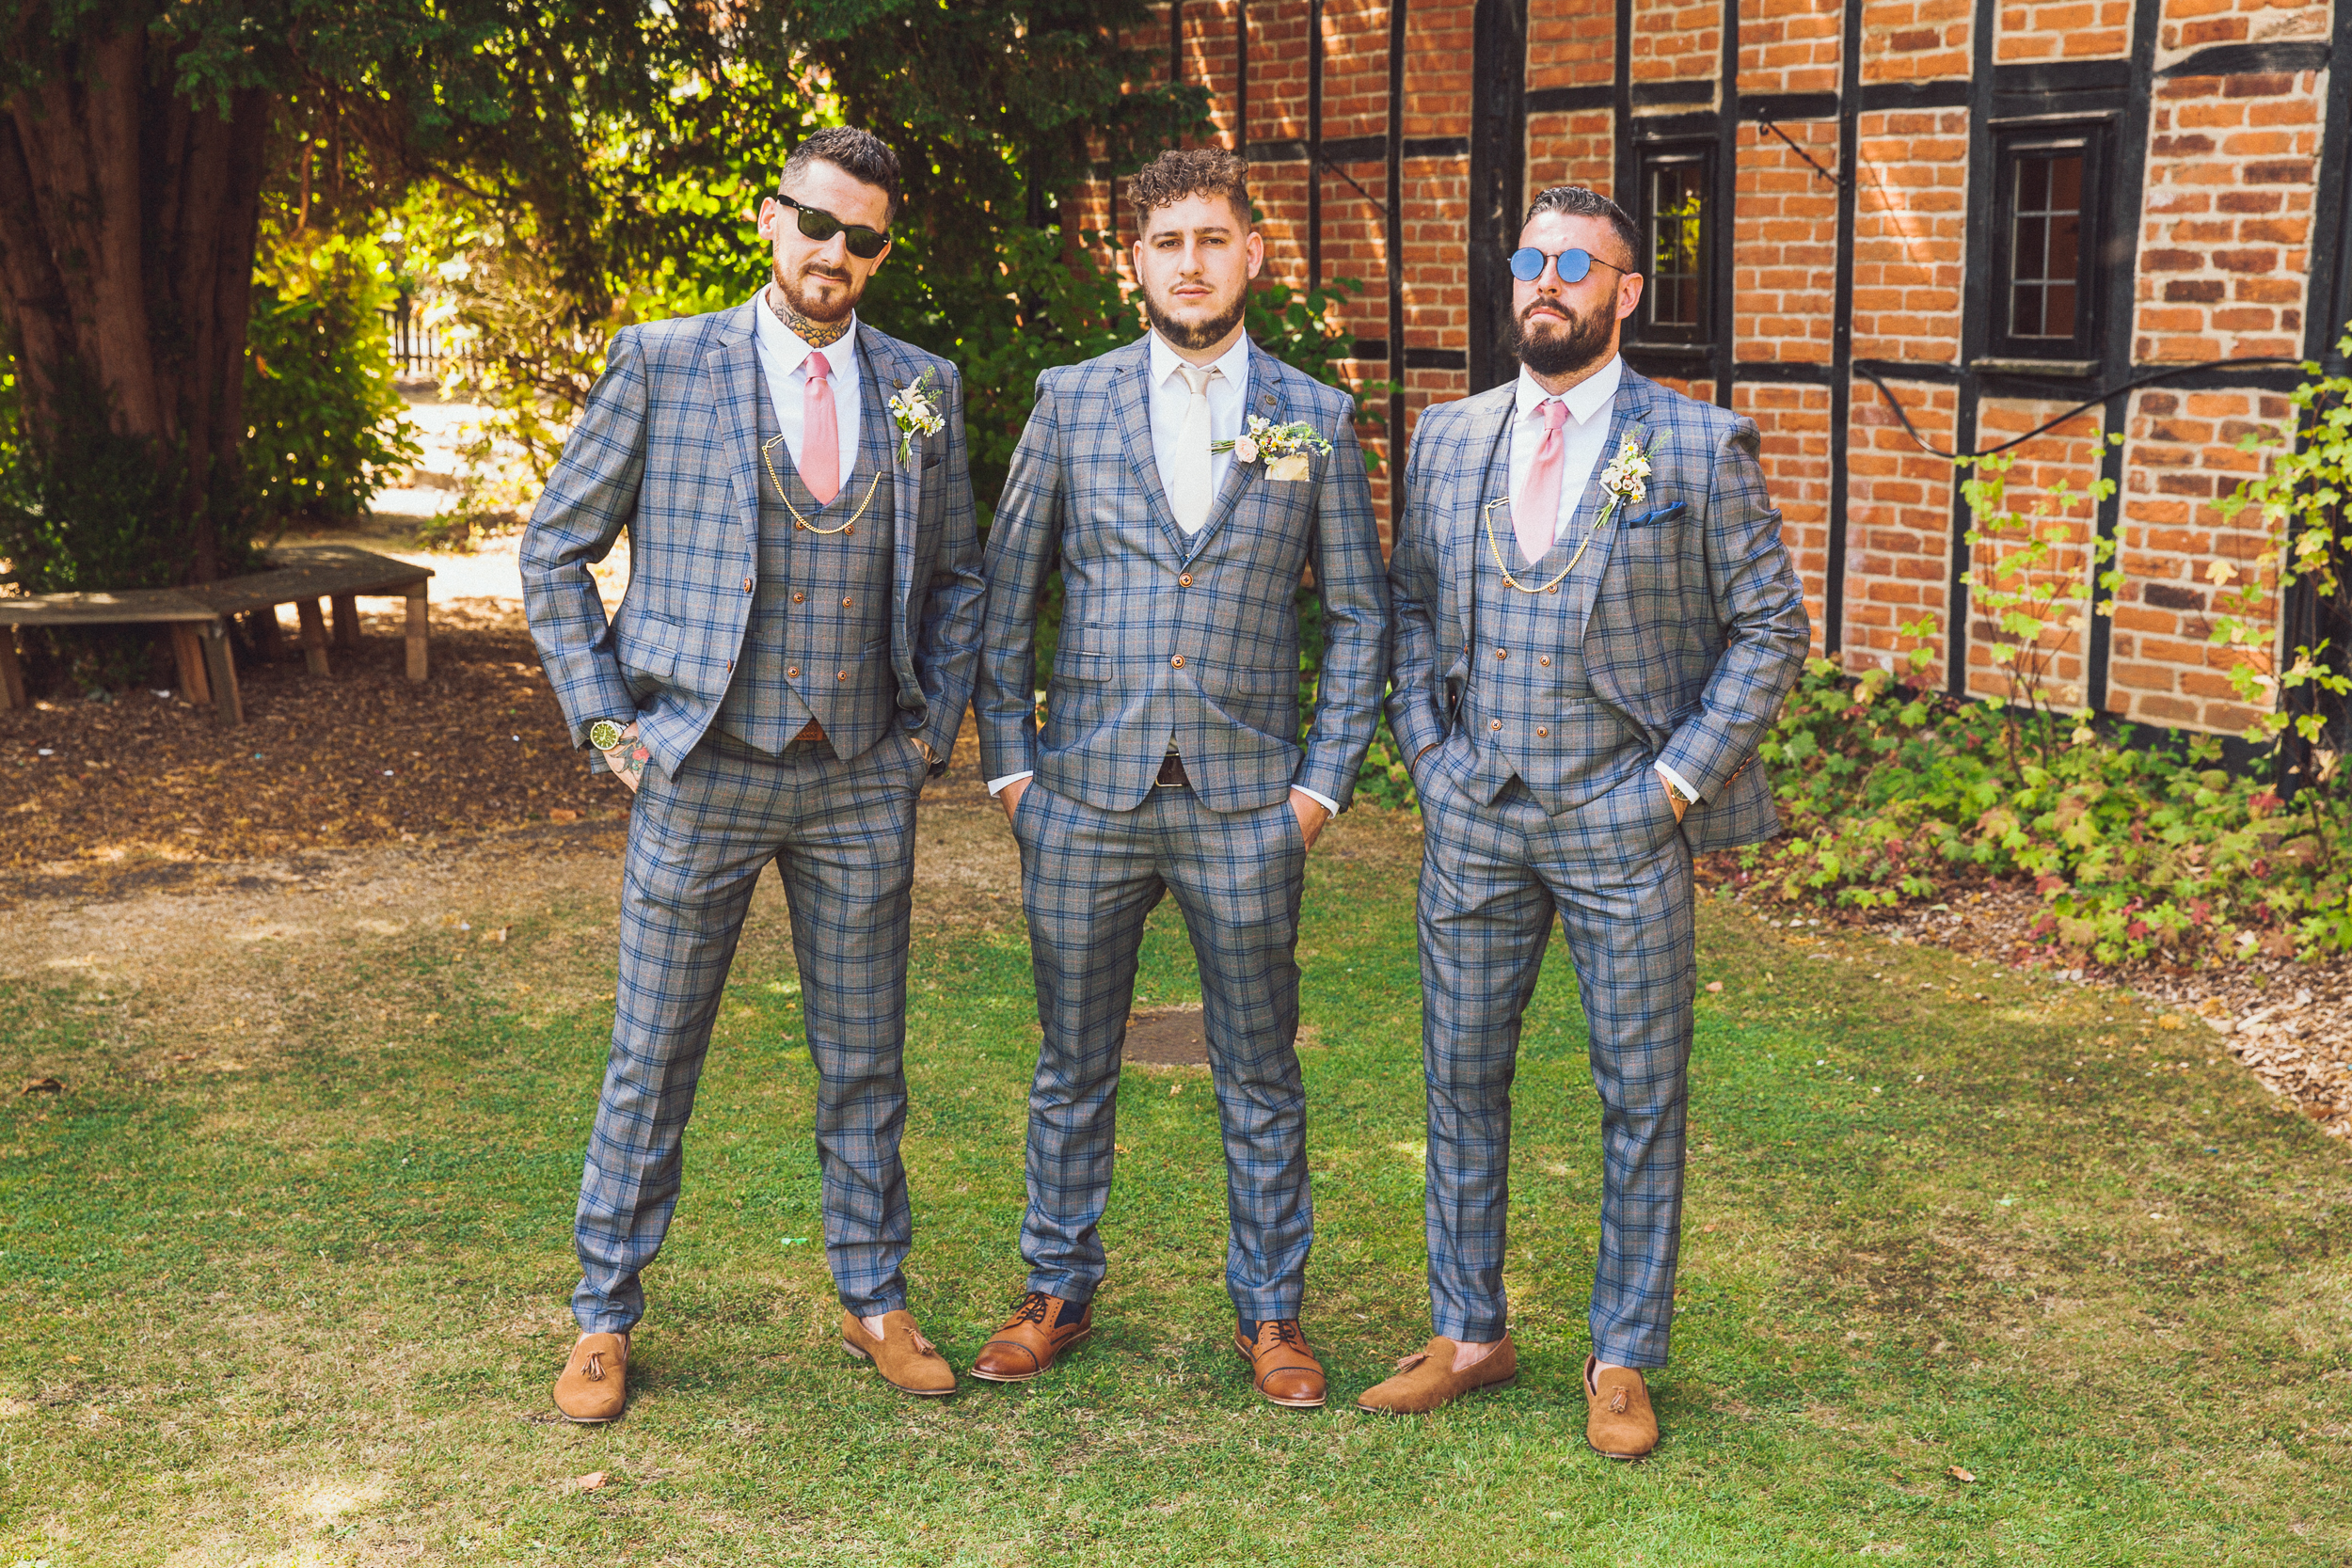 The boys looking slick in Mark Darcie suits at the barns hotel wedding, Bedfordshire wedding photographer Richard Puncheon Capturing the moment.